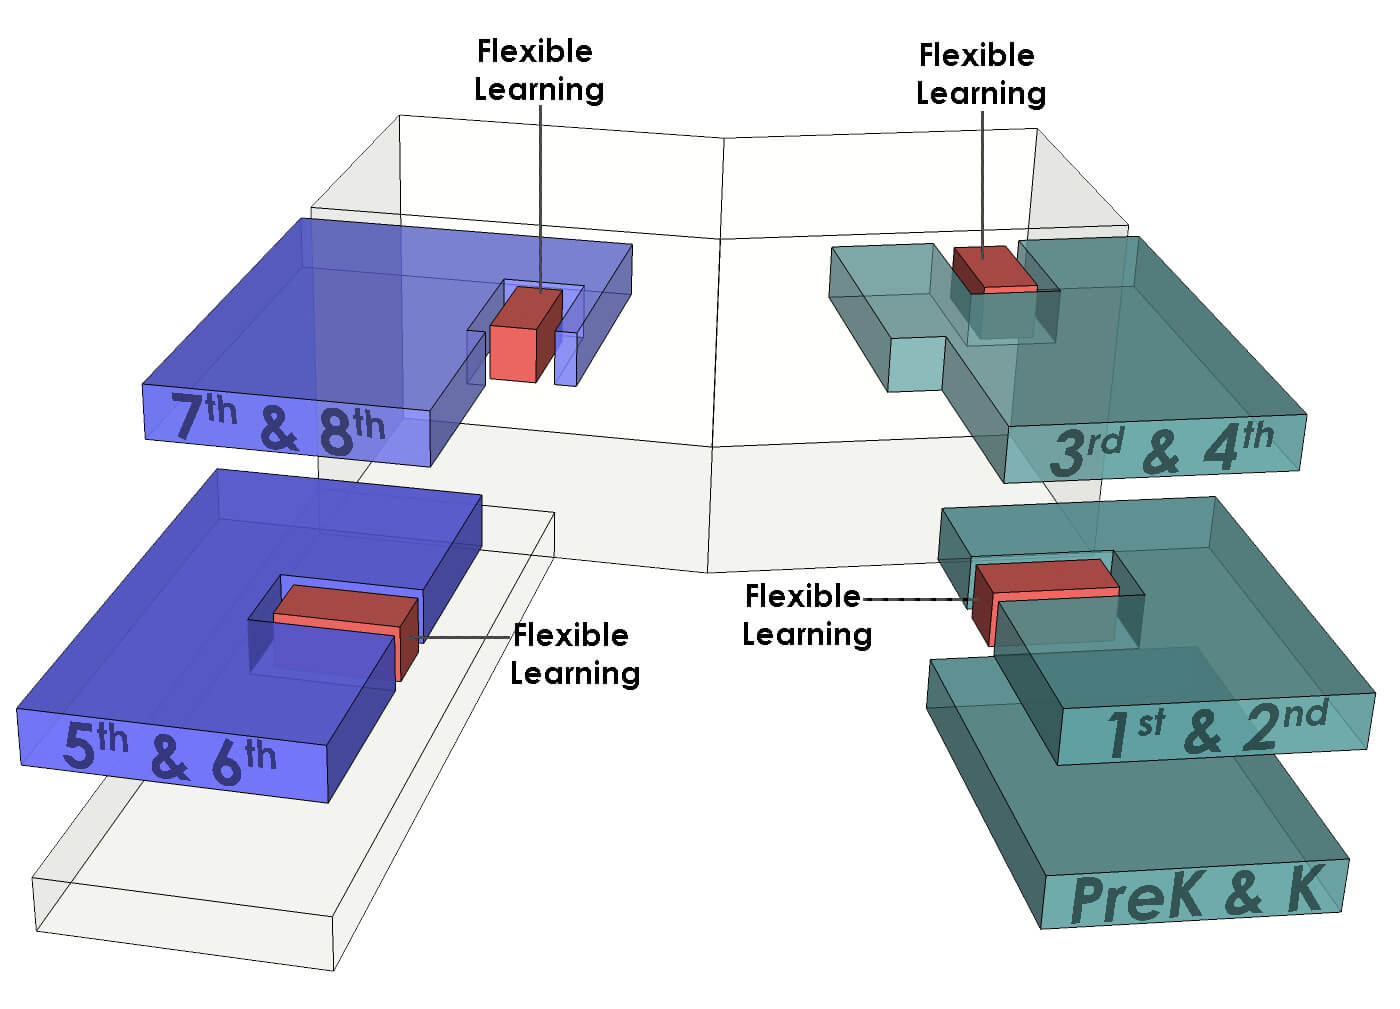 Diagram illustrating the grades breakdown and the flexible learning nodes interspersed in red throughout.